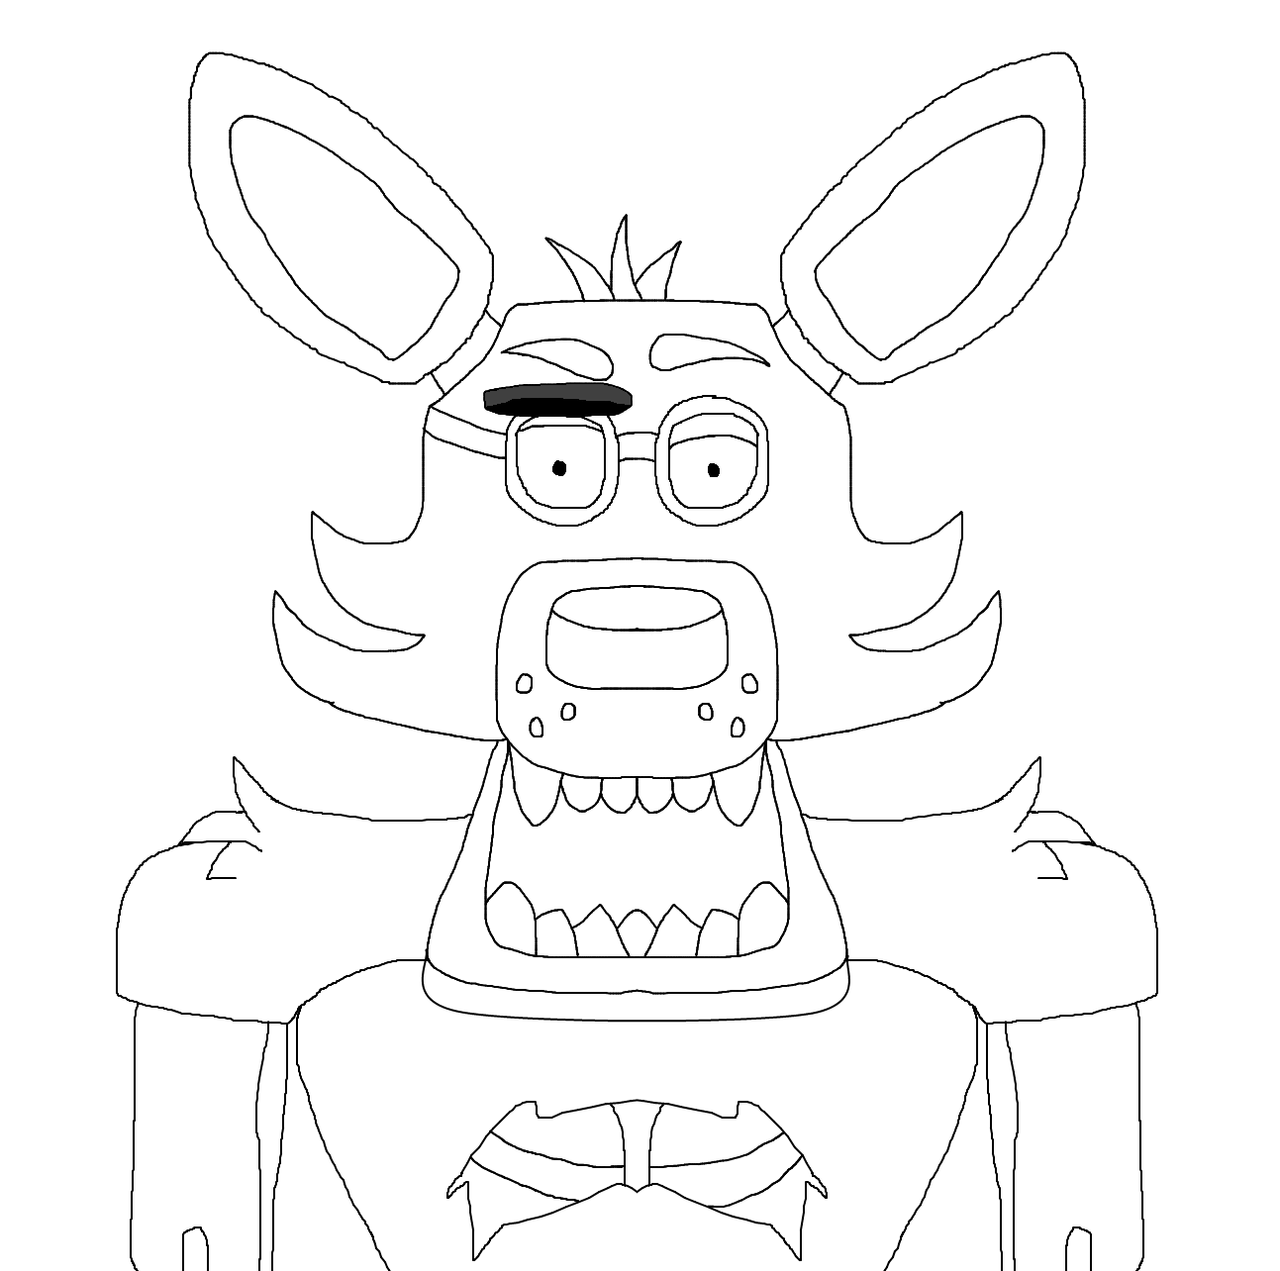 foxy the pirate coloring pages - photo#12